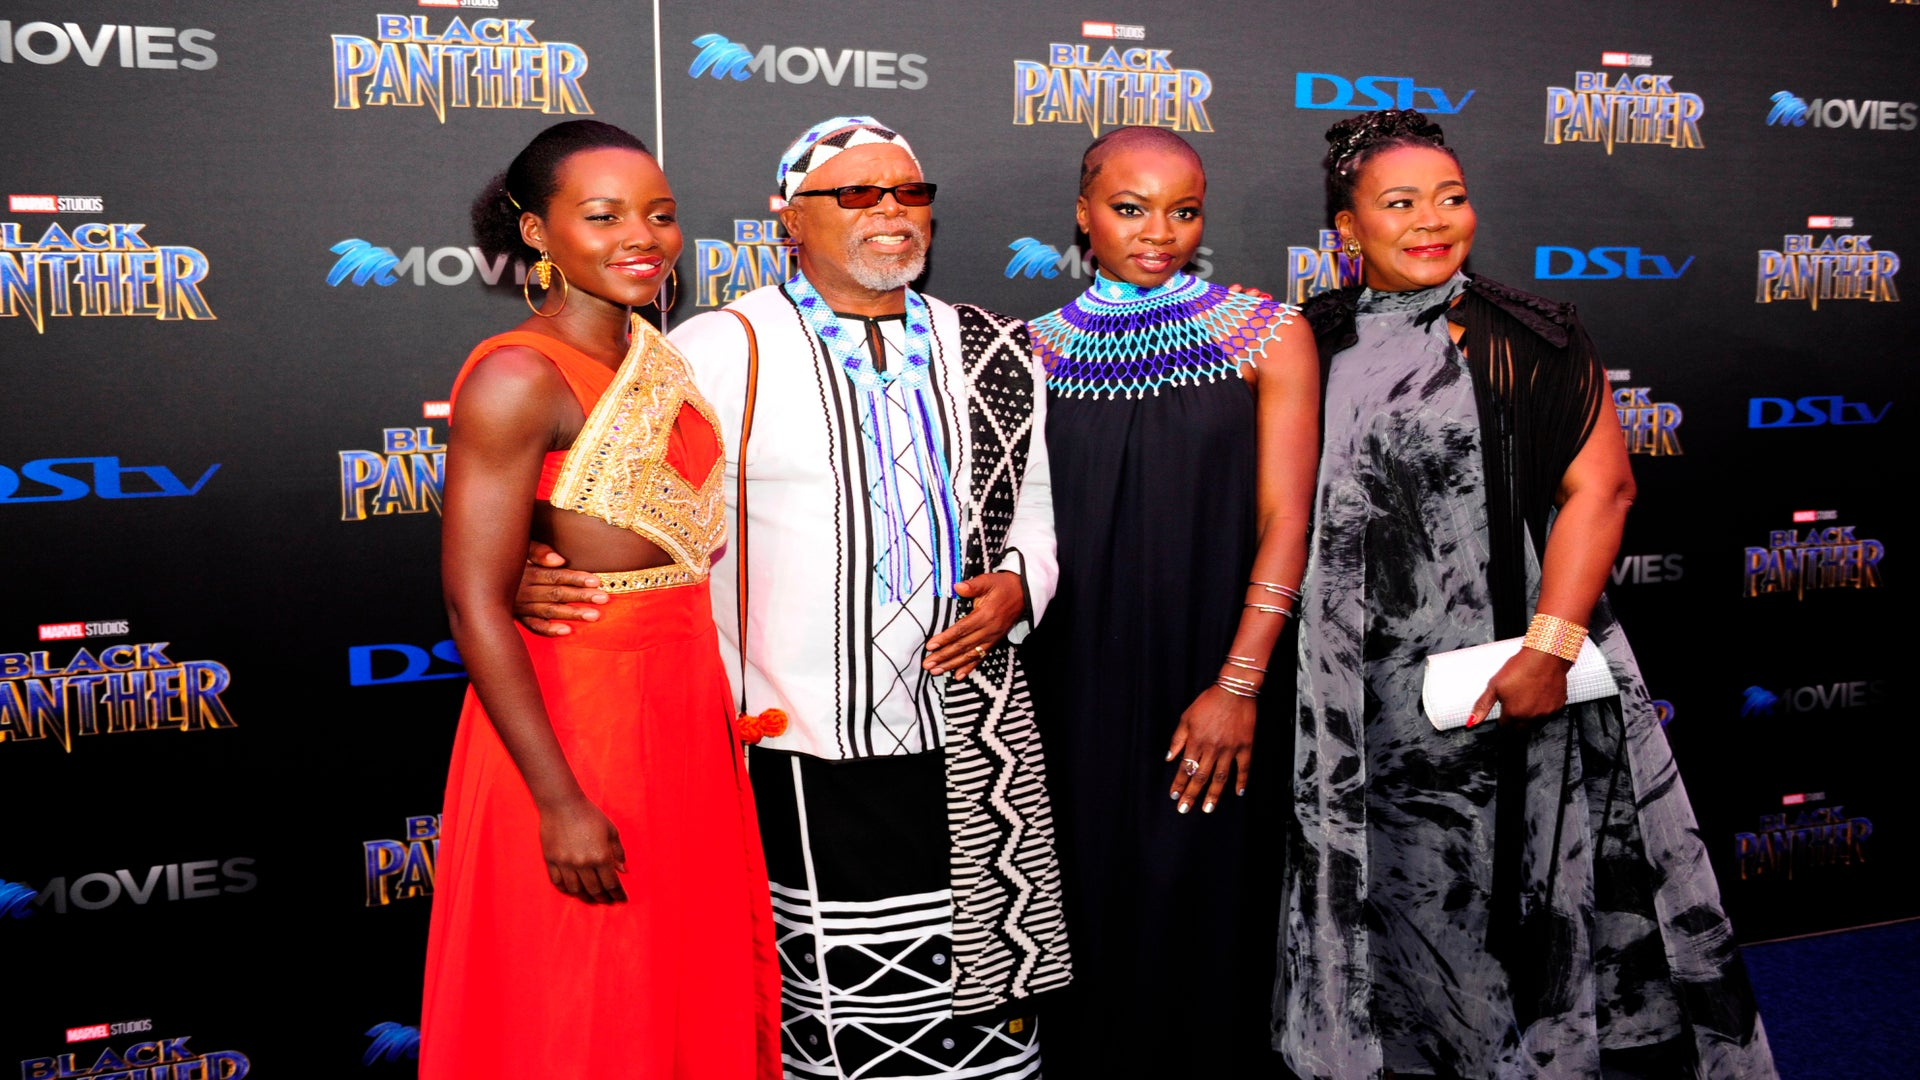 'Black Panther' Premiered In Africa And The Continent Showed Out!